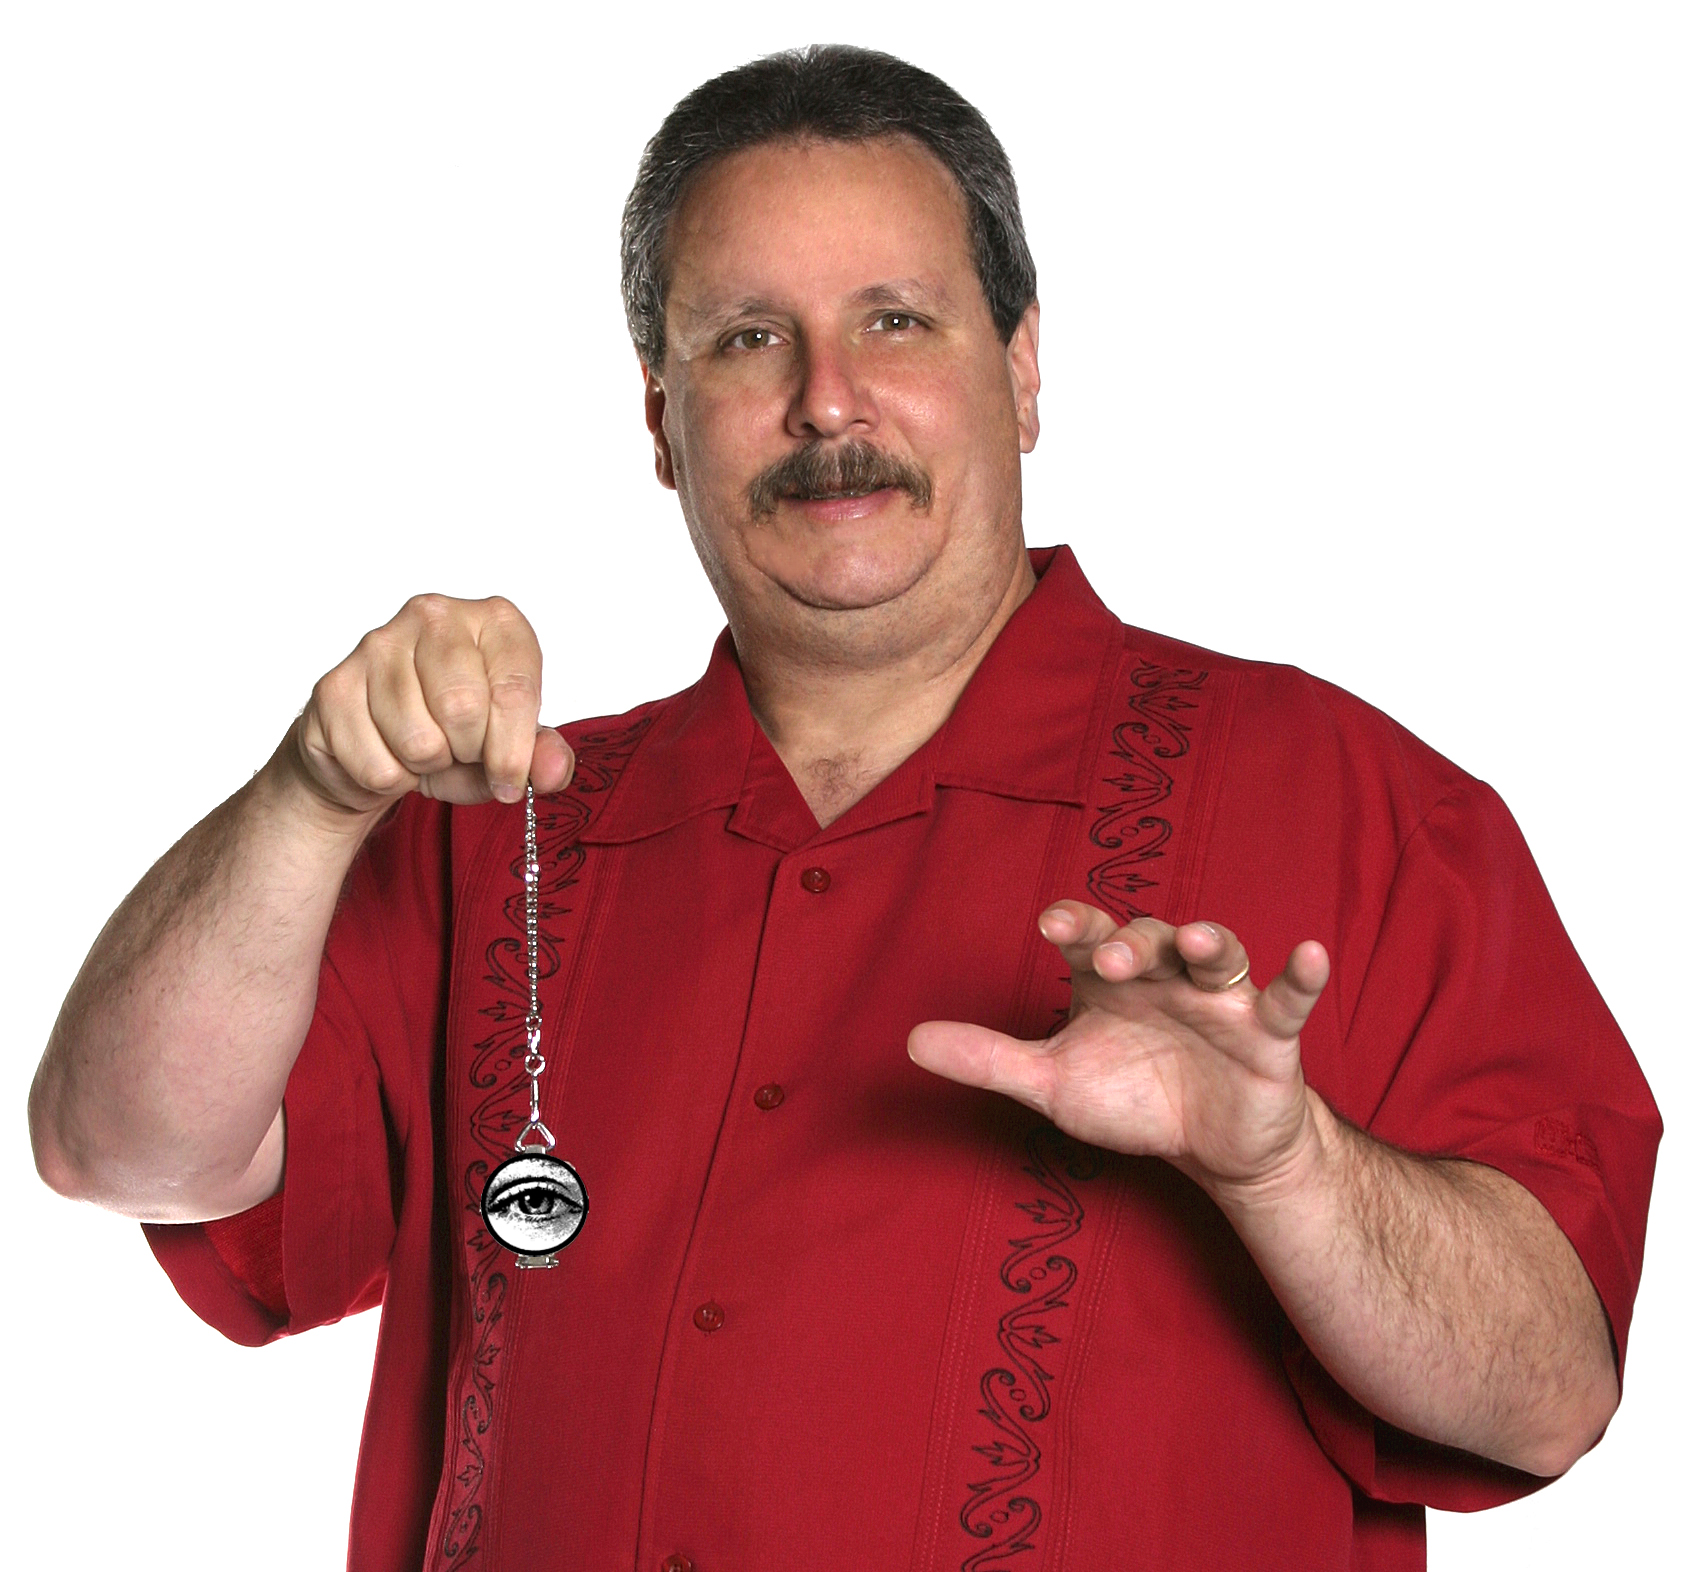 Steve Wronker Comedy Hypnosis appearing at CBNA on September 9